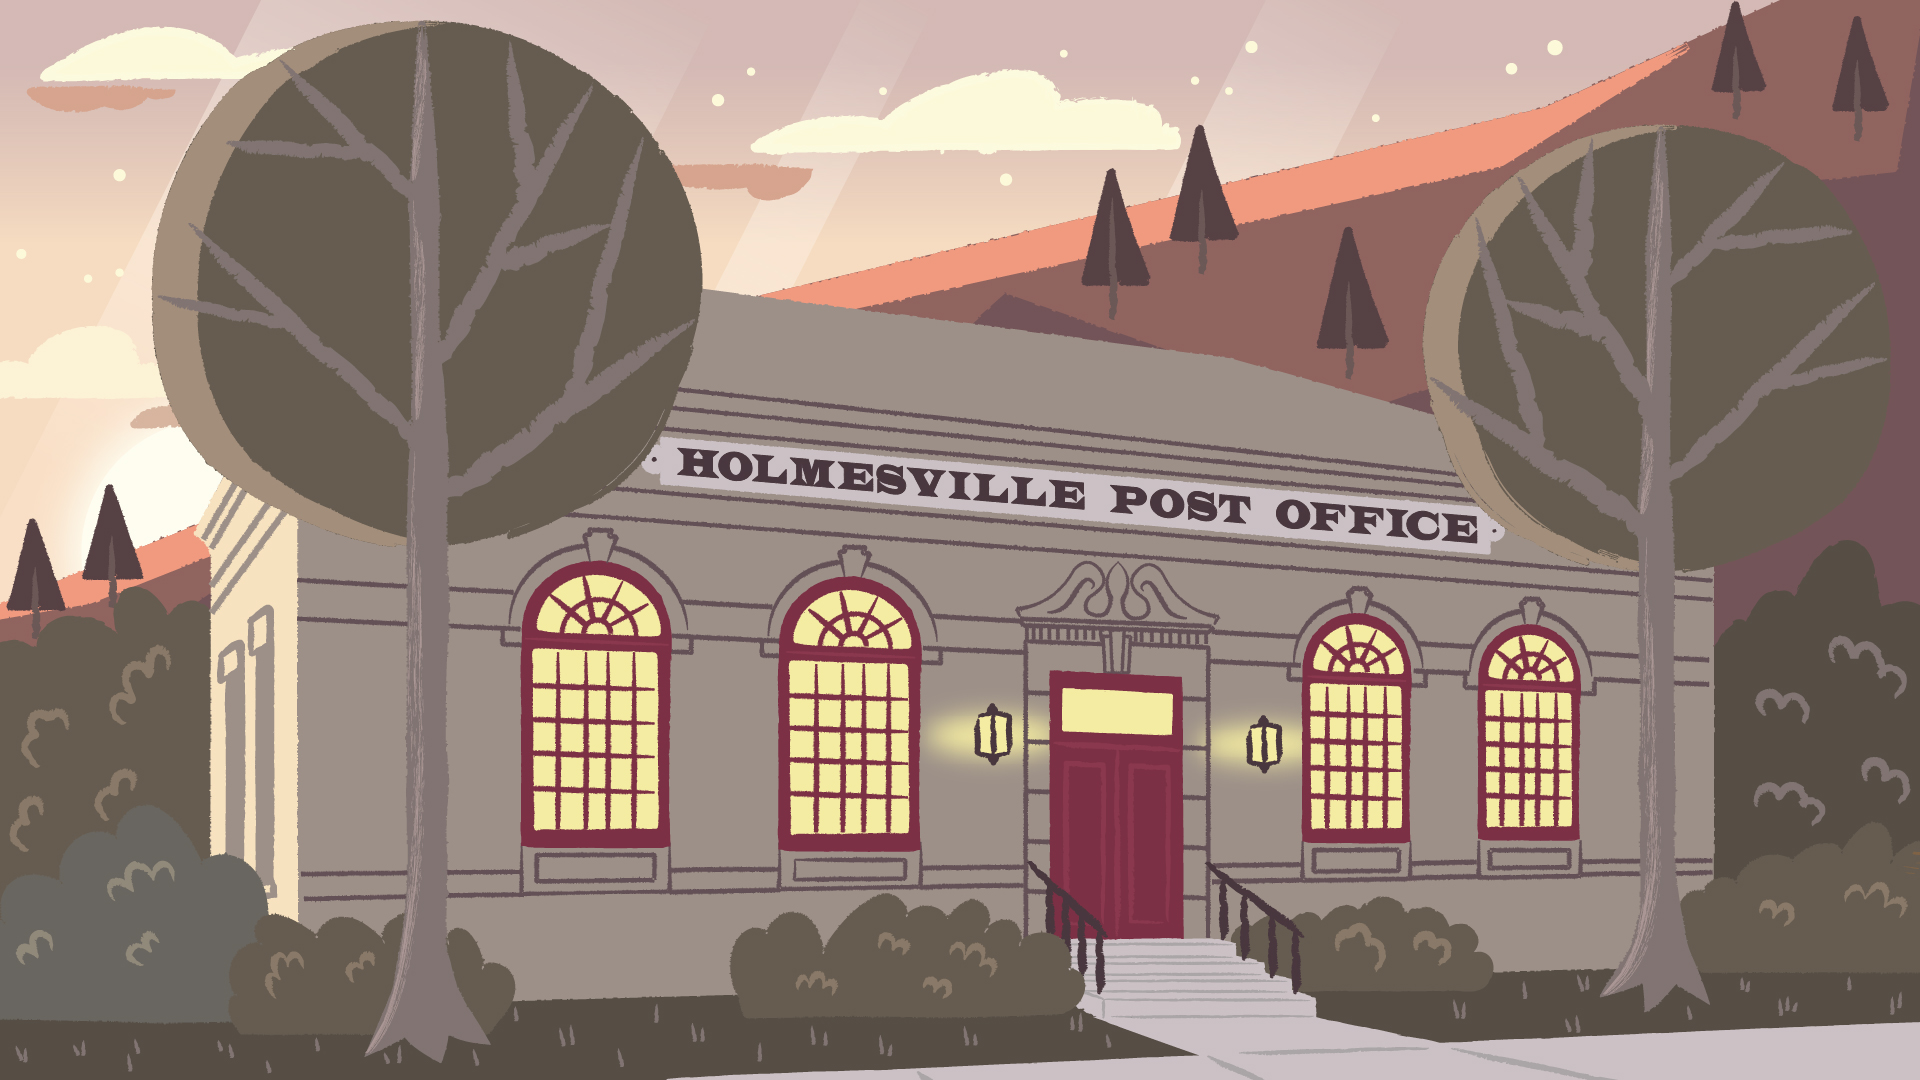 Production illustration of Holmesville post office